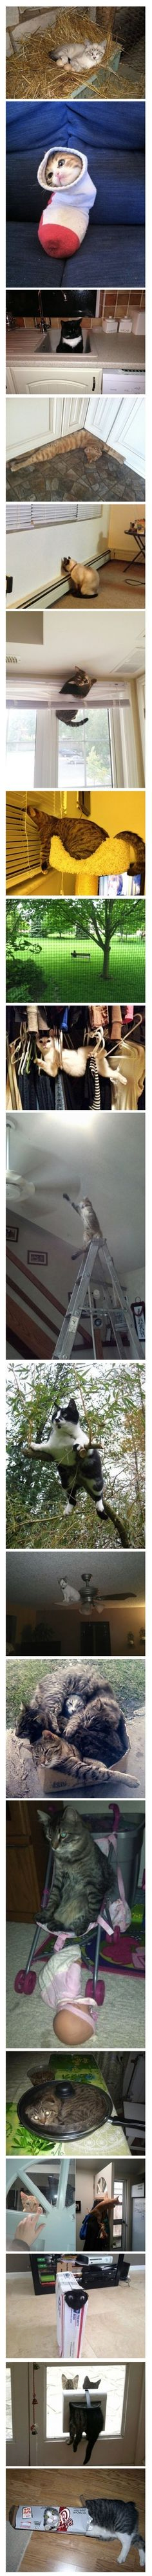 Cat's in awkward places. lol